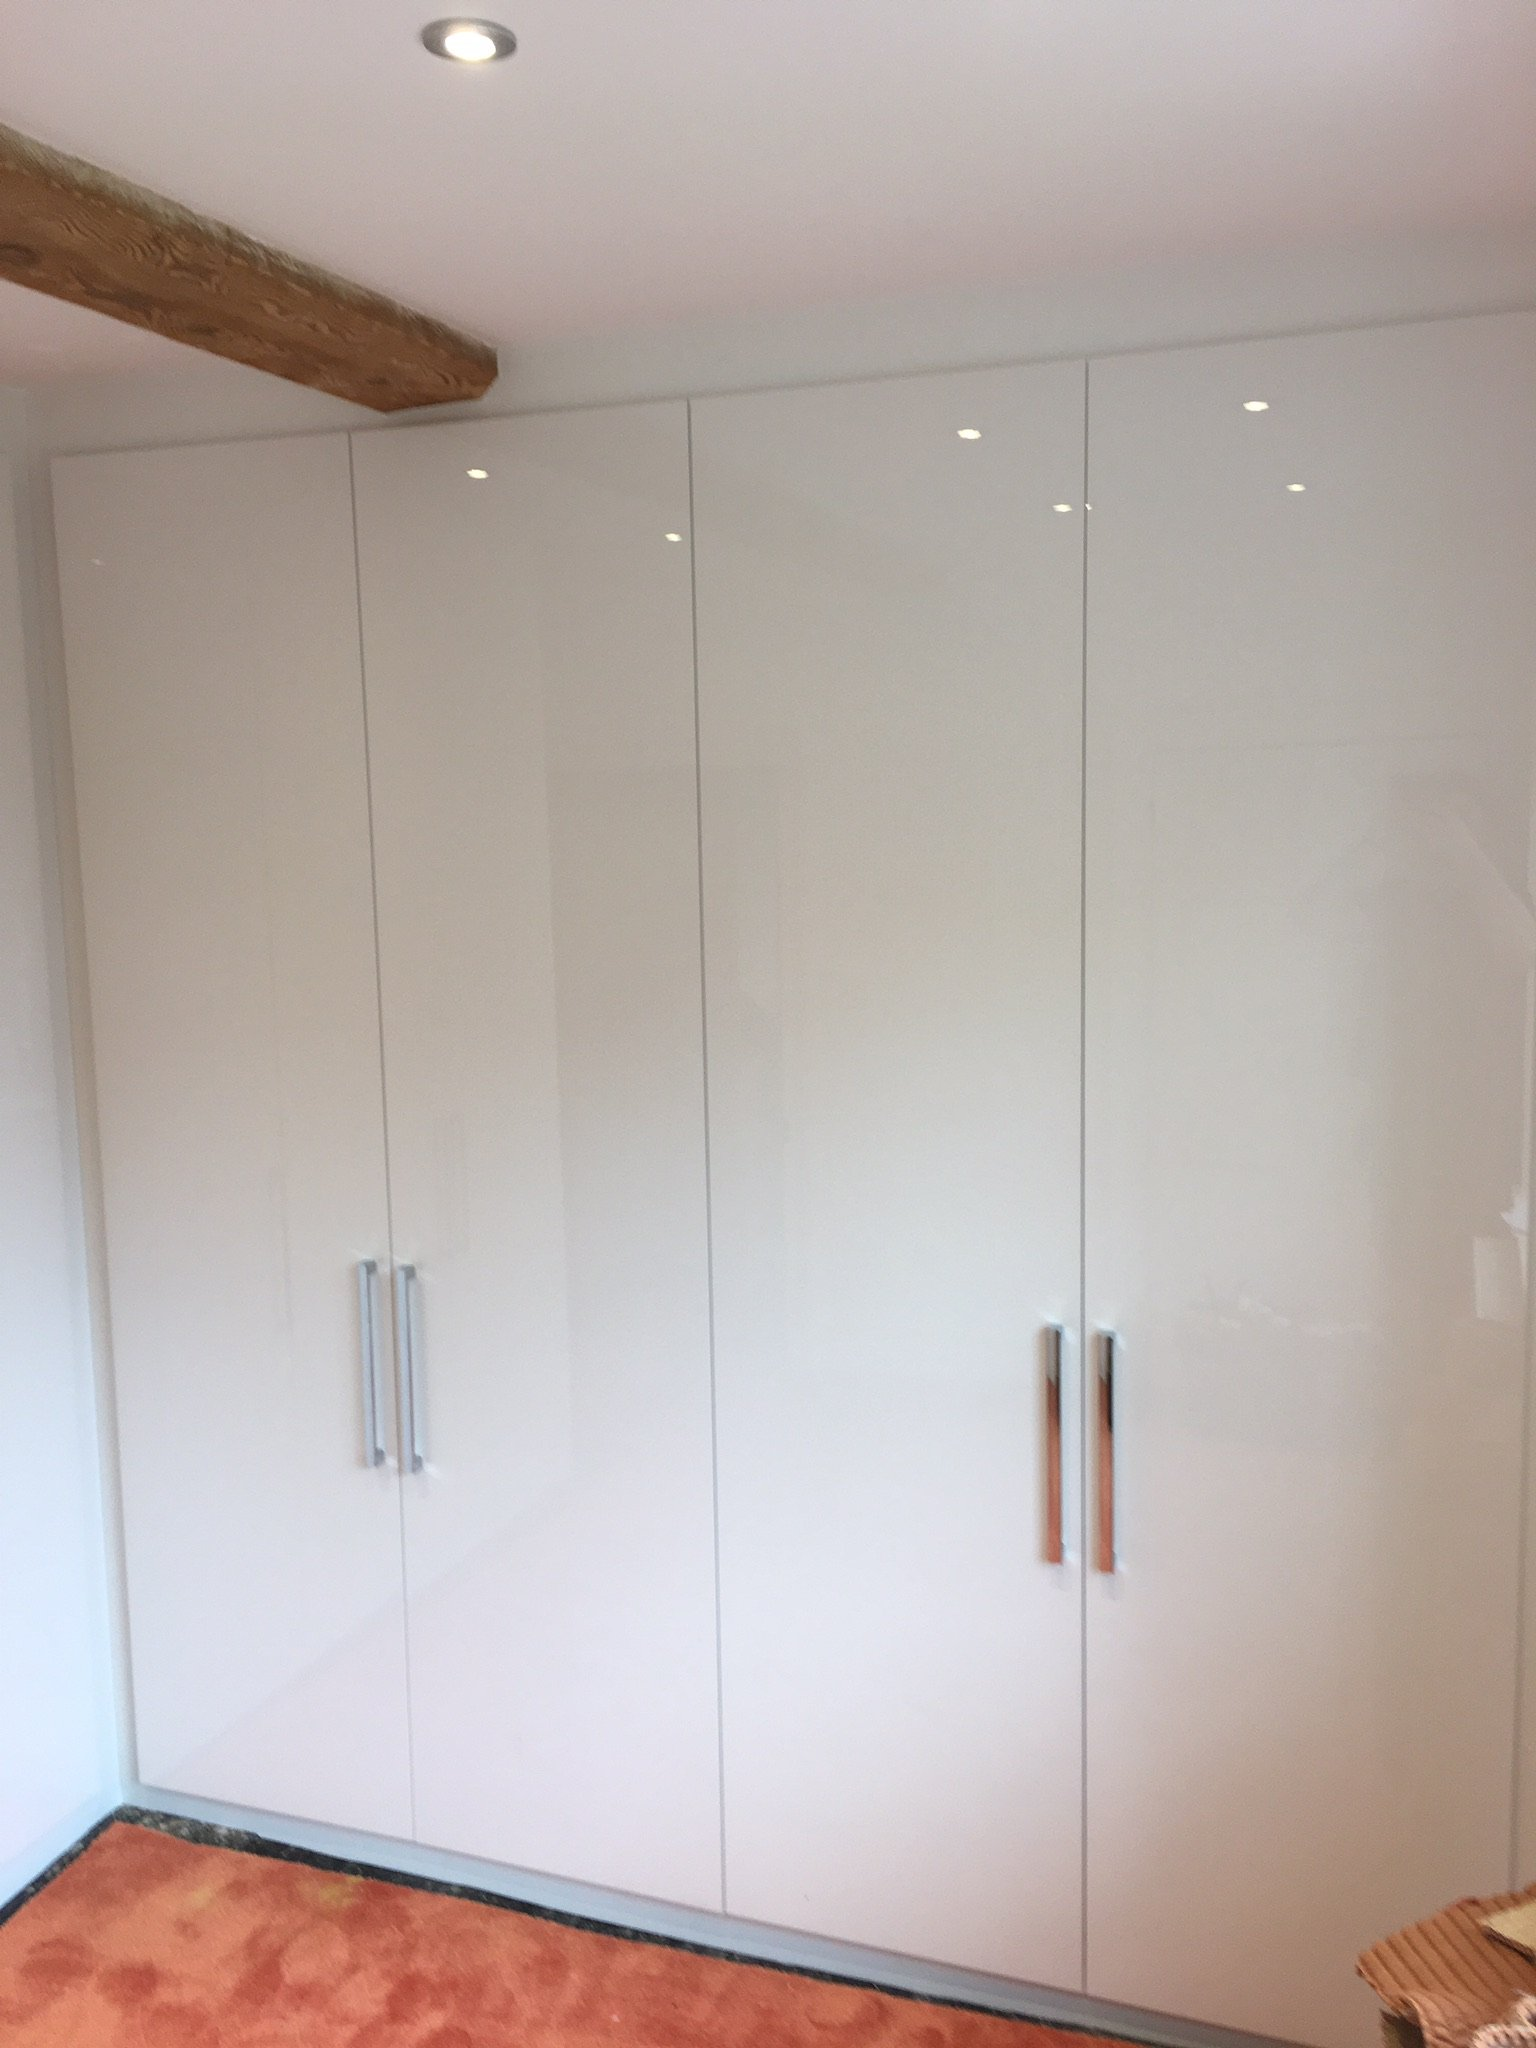 White Gloss Bedroom Furniture: New Fitted Wardrobes